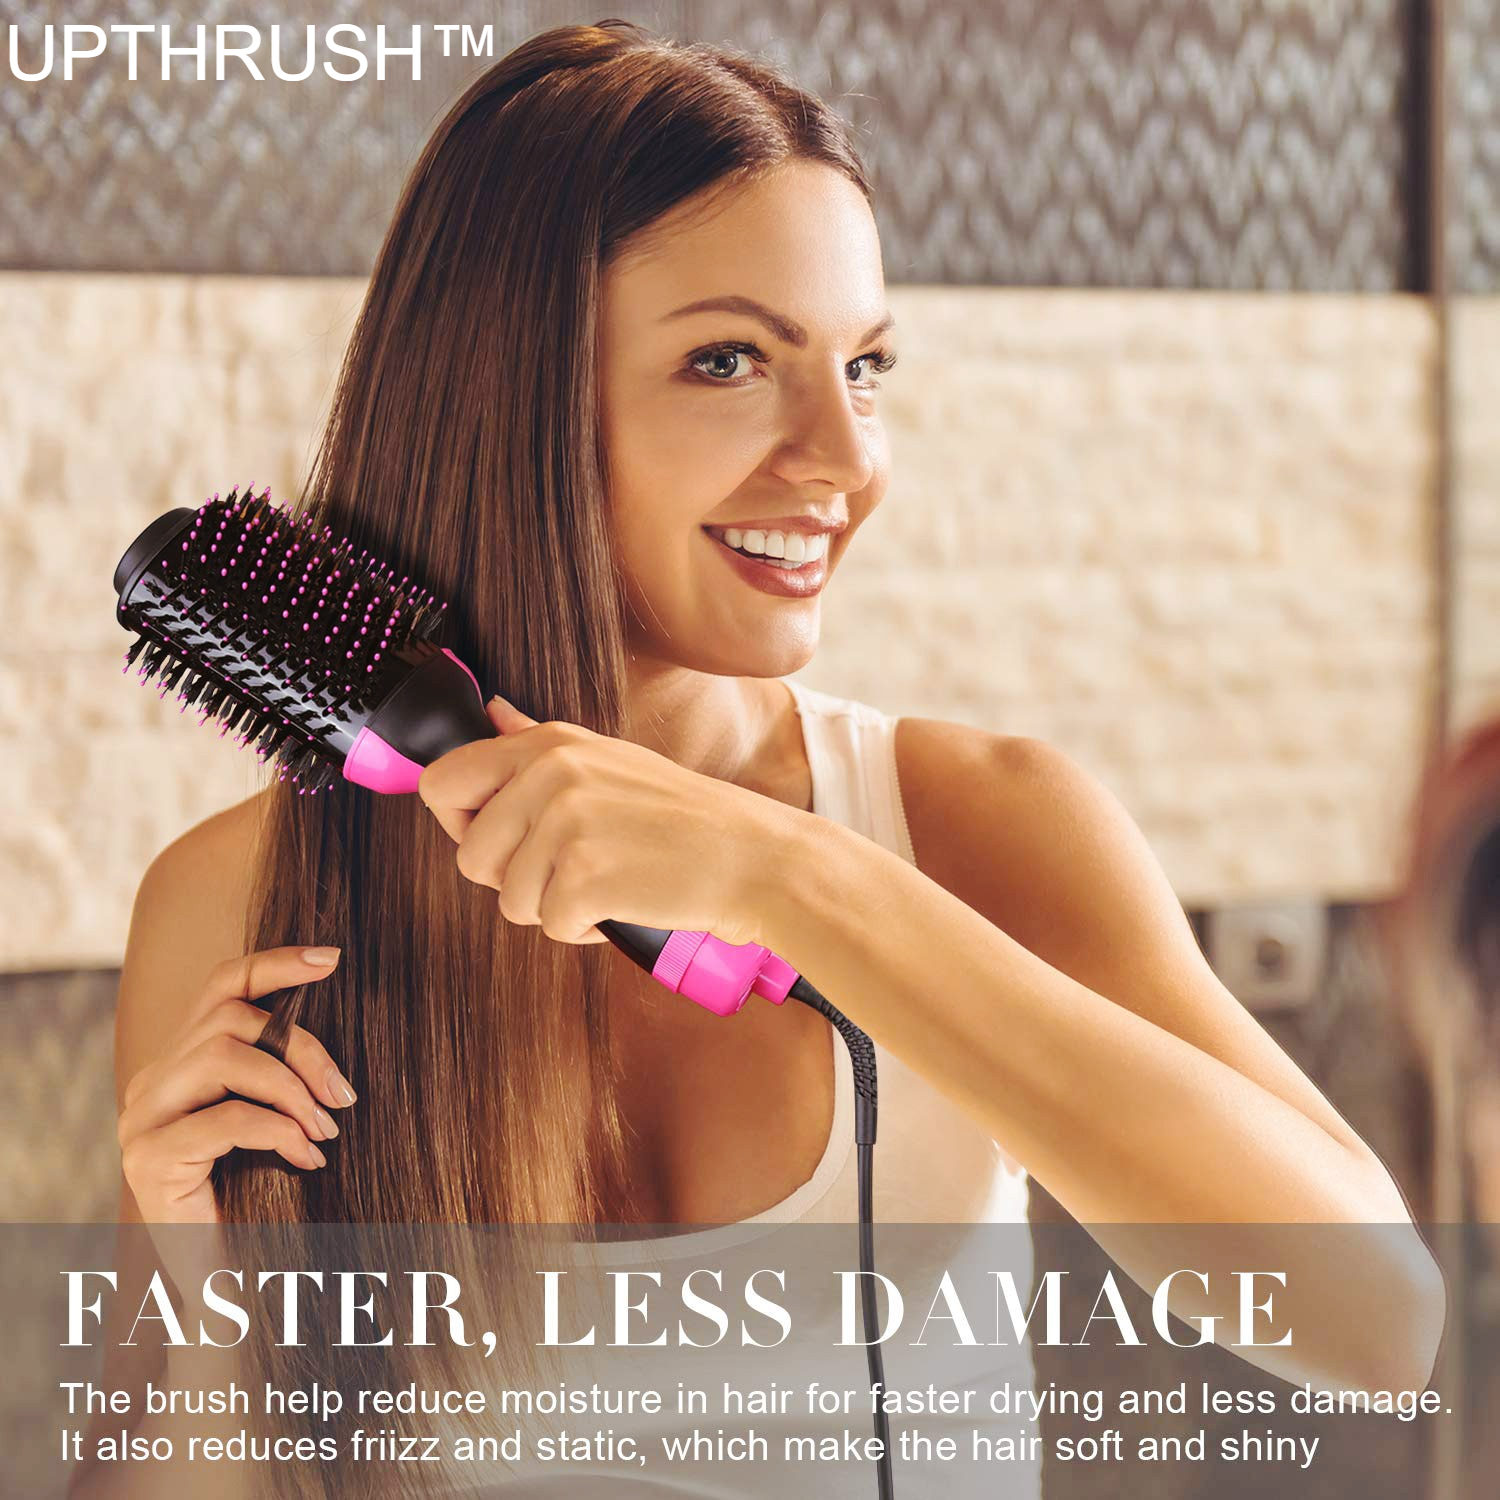 UPTHRUSH™ One Step Blow Dryer Brush Hair Dryer Brush And Volumizer Professional 3-in-1 Hair Dryer Hot Brush Blow Drier Hairbrush Styler